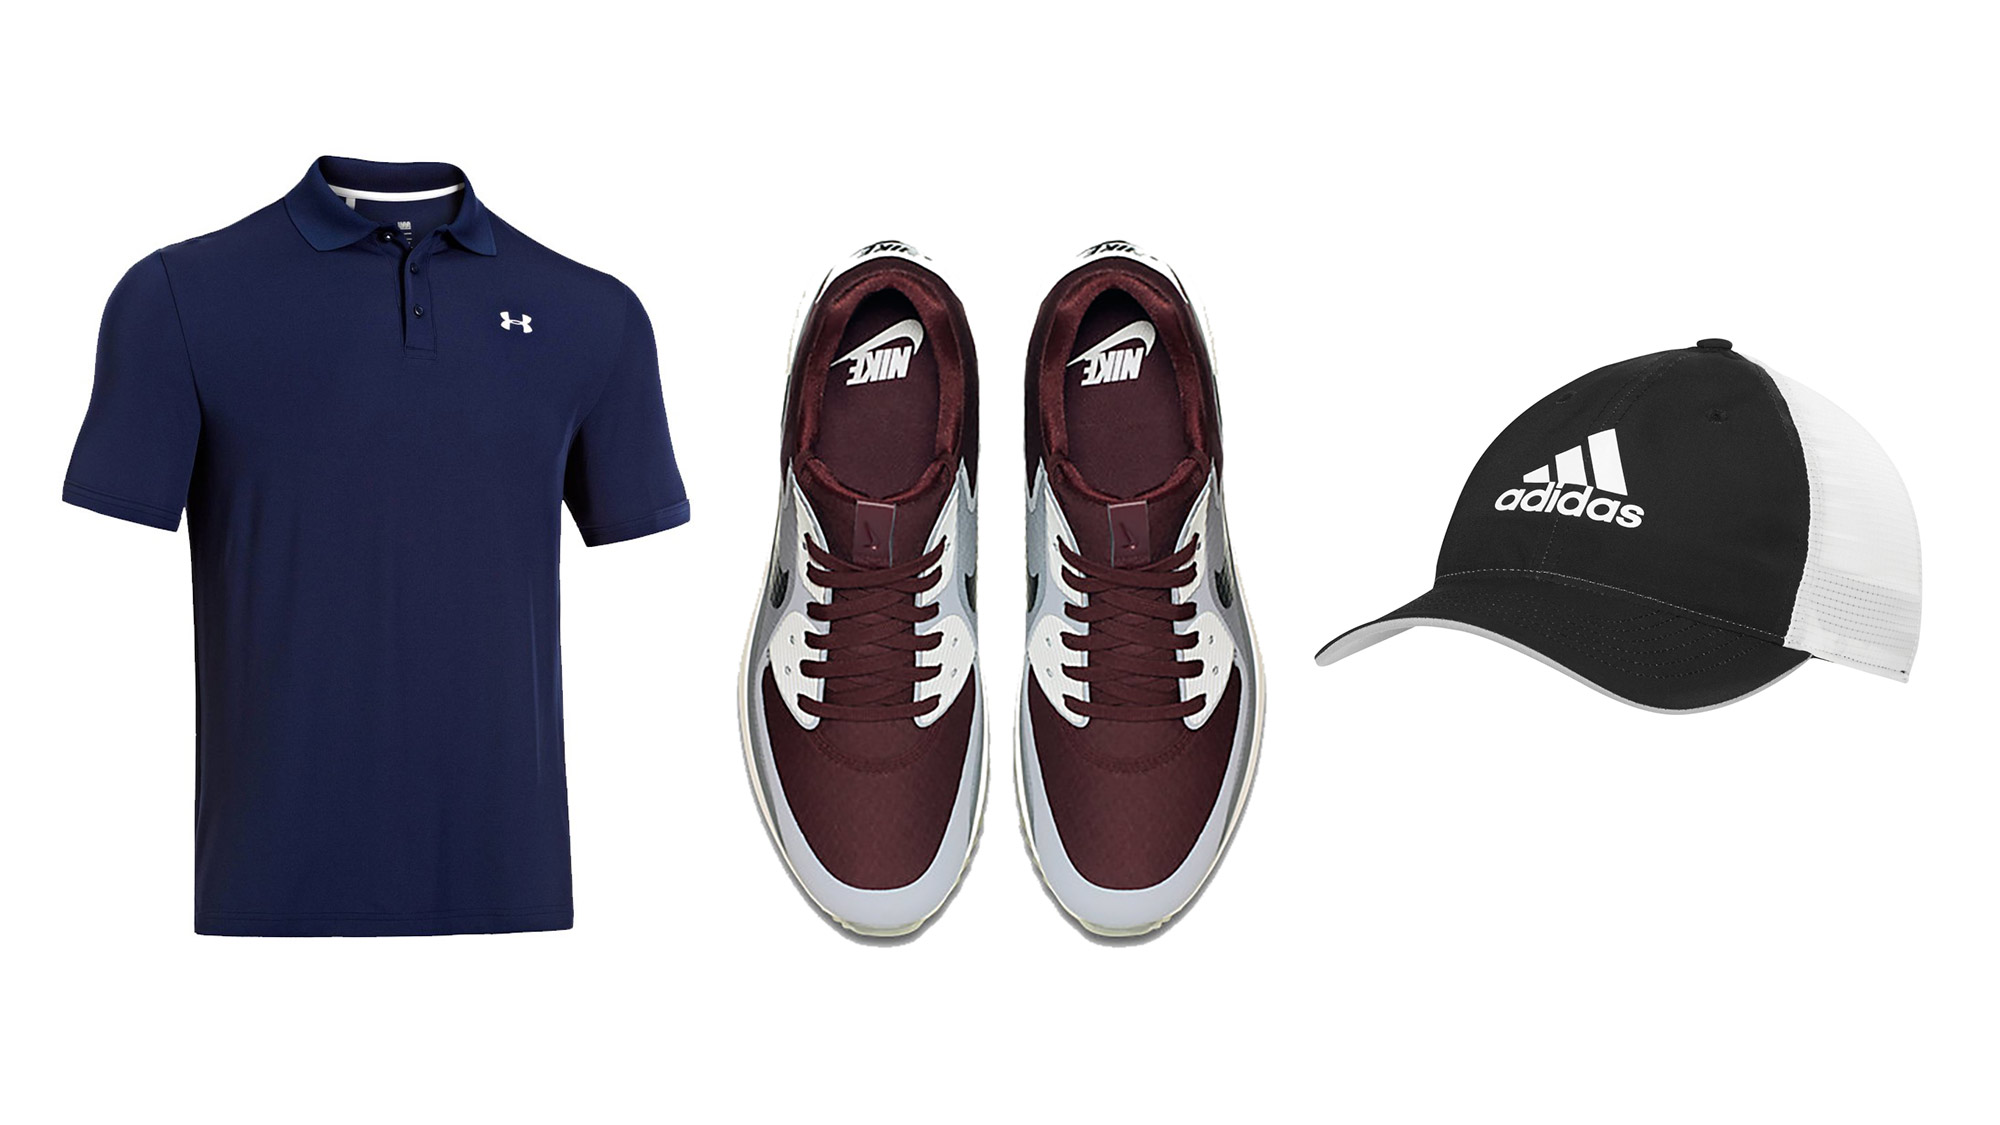 From left to right: Under Armour polo, Nike golf shoes and Adidas cap.